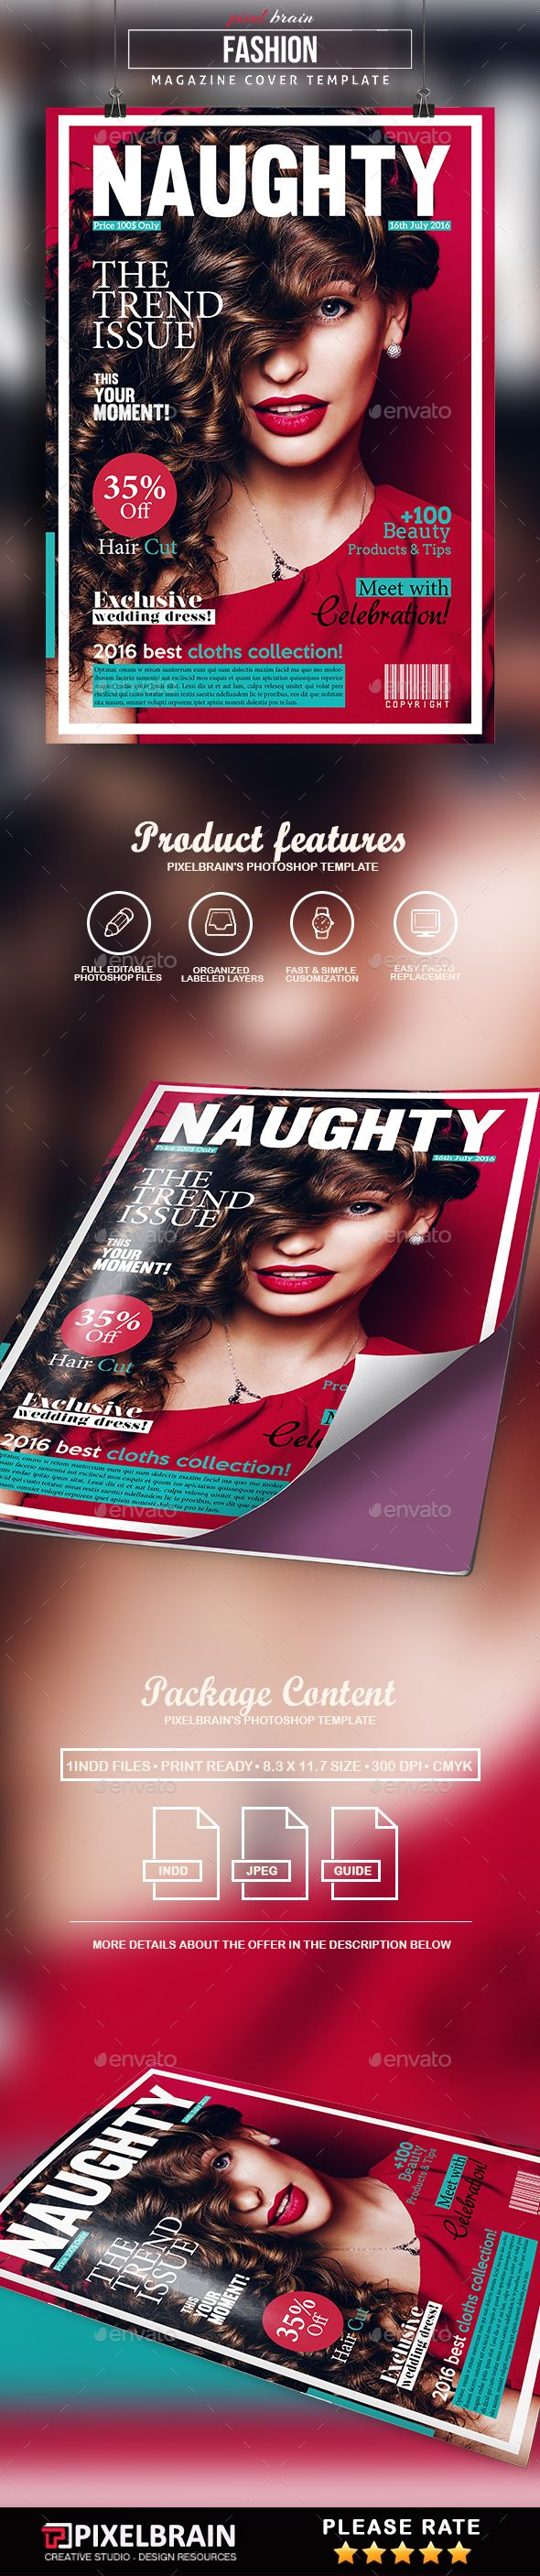 Fashion Magazine Cover Template - Magazines Print Templates Download here : https://graphicriver.net/item/fashion-magazine-cover-template/18301468?s_rank=85&ref=Al-fatih